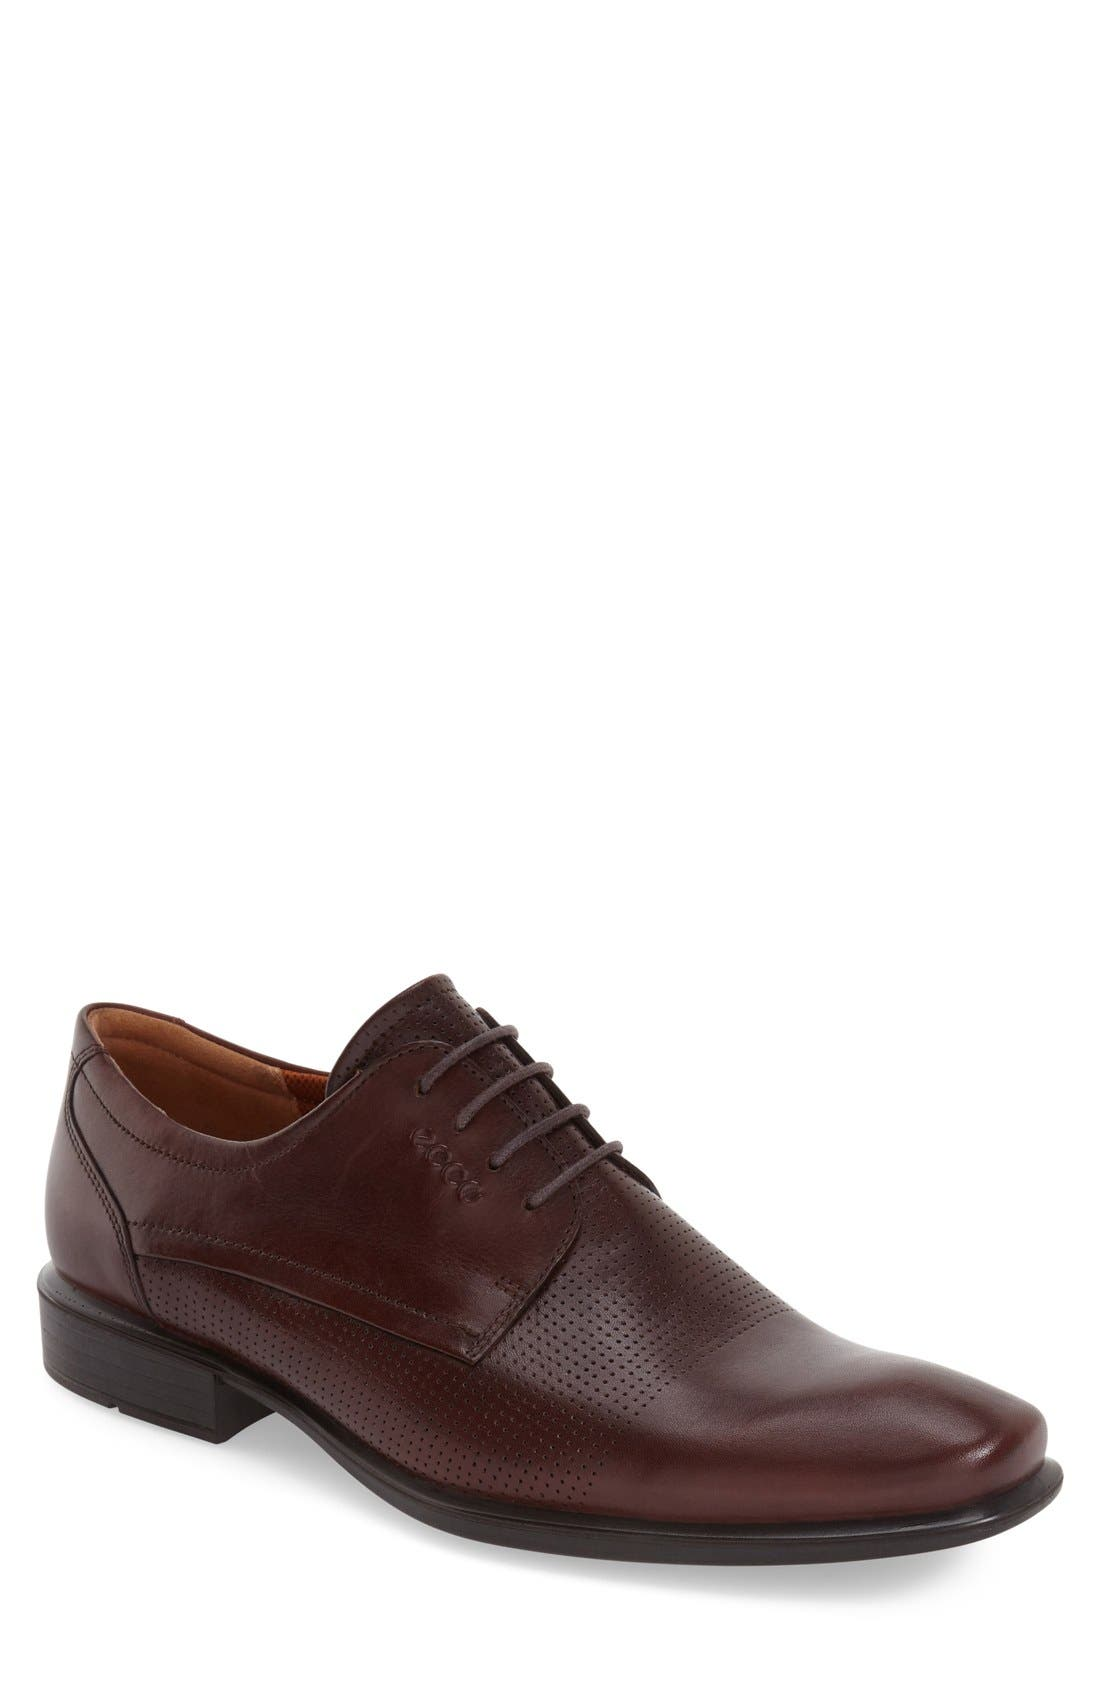 'Cairo' Perforated Plain Toe Derby,                         Main,                         color, Rust Brown Leather